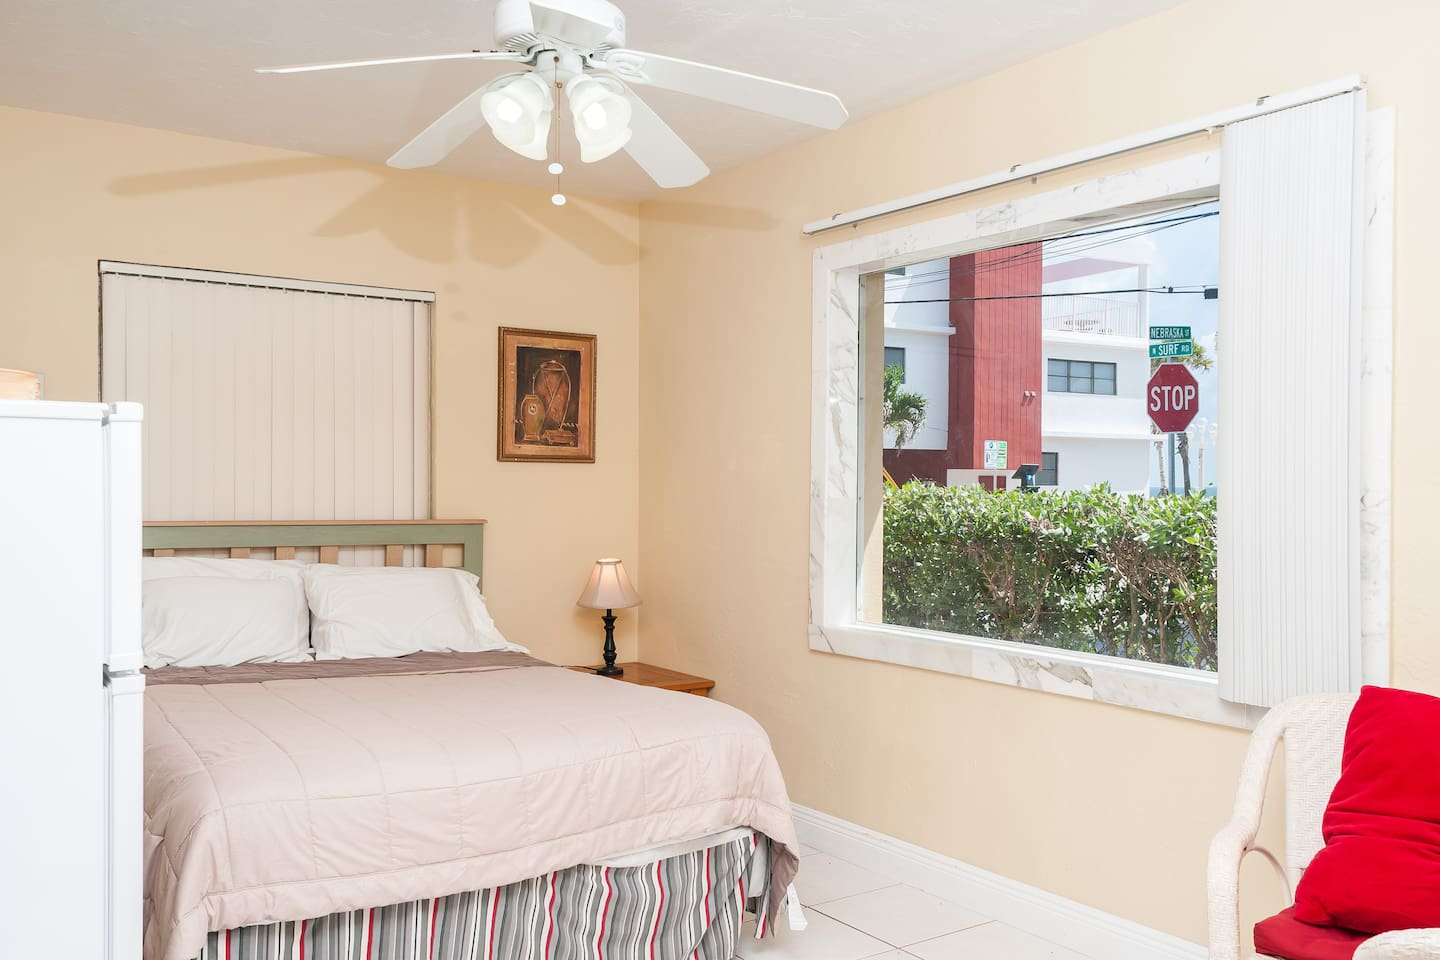 Beach house apartment with newly renovated kitchen, living room and bathroom.